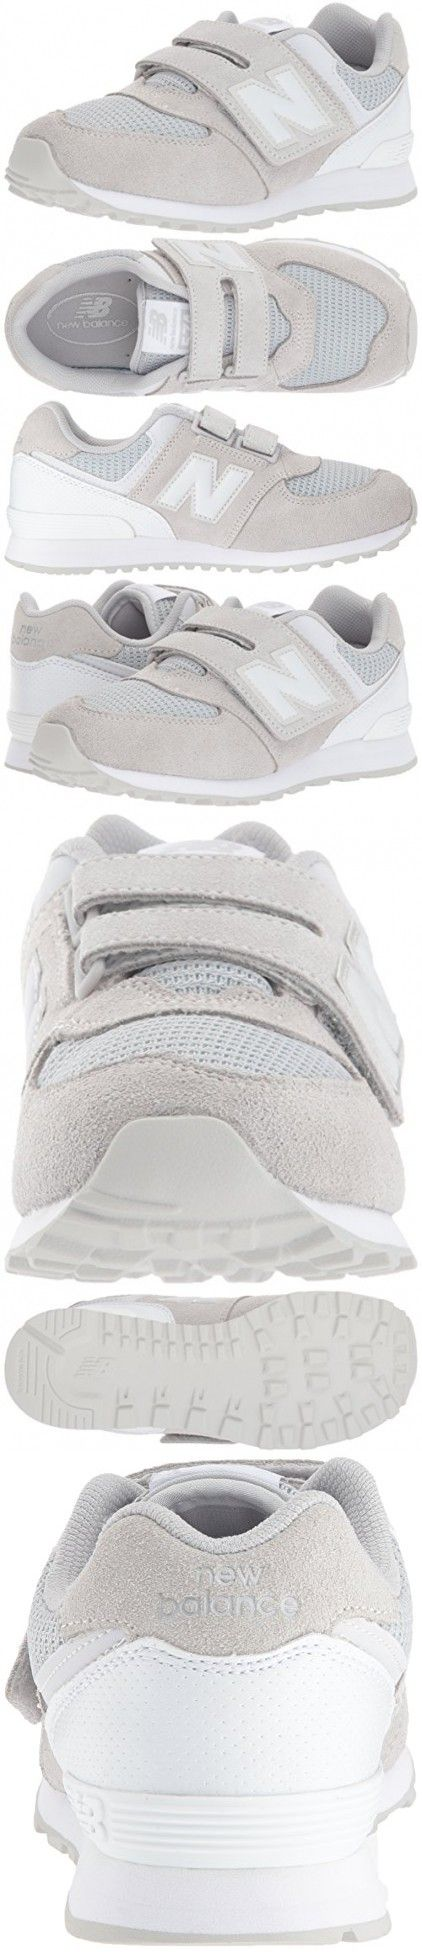 New Balance Boys' KV574 Hook and Loop Sneaker, Grey/White, 9 Wide US Infant